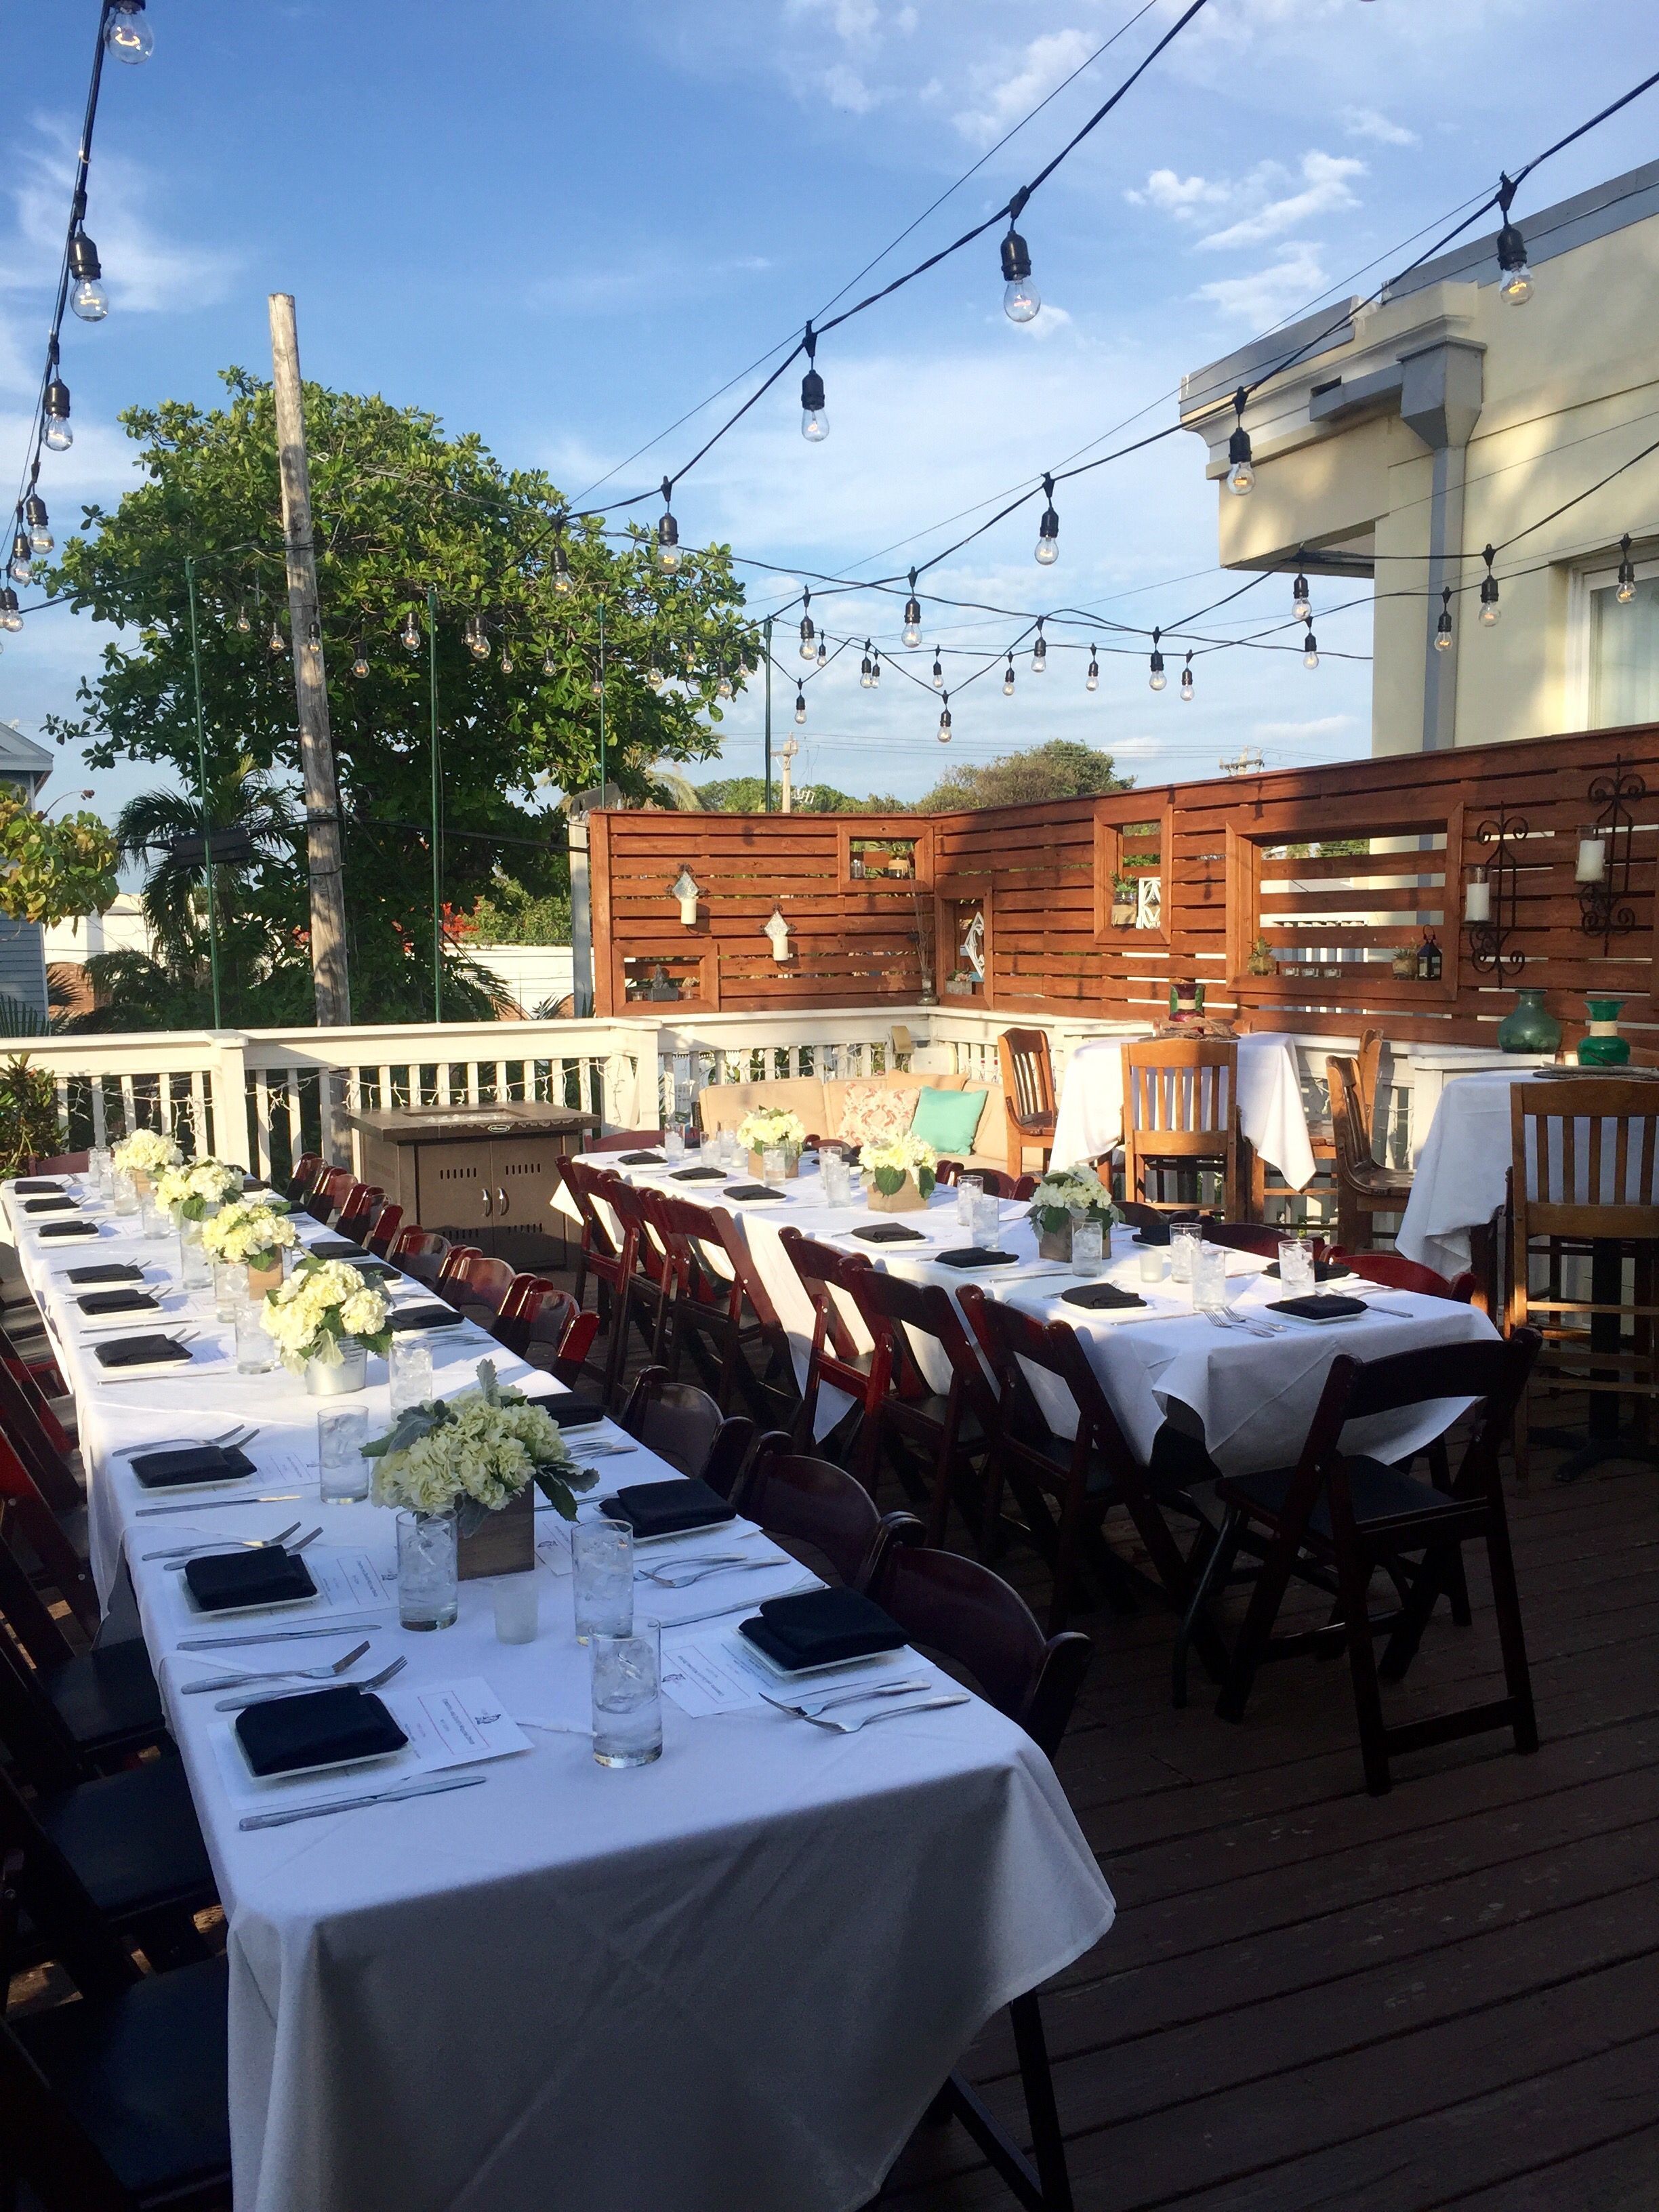 The Moon Lounge Bagatelle Key West Wedding Dinner Venue For Large